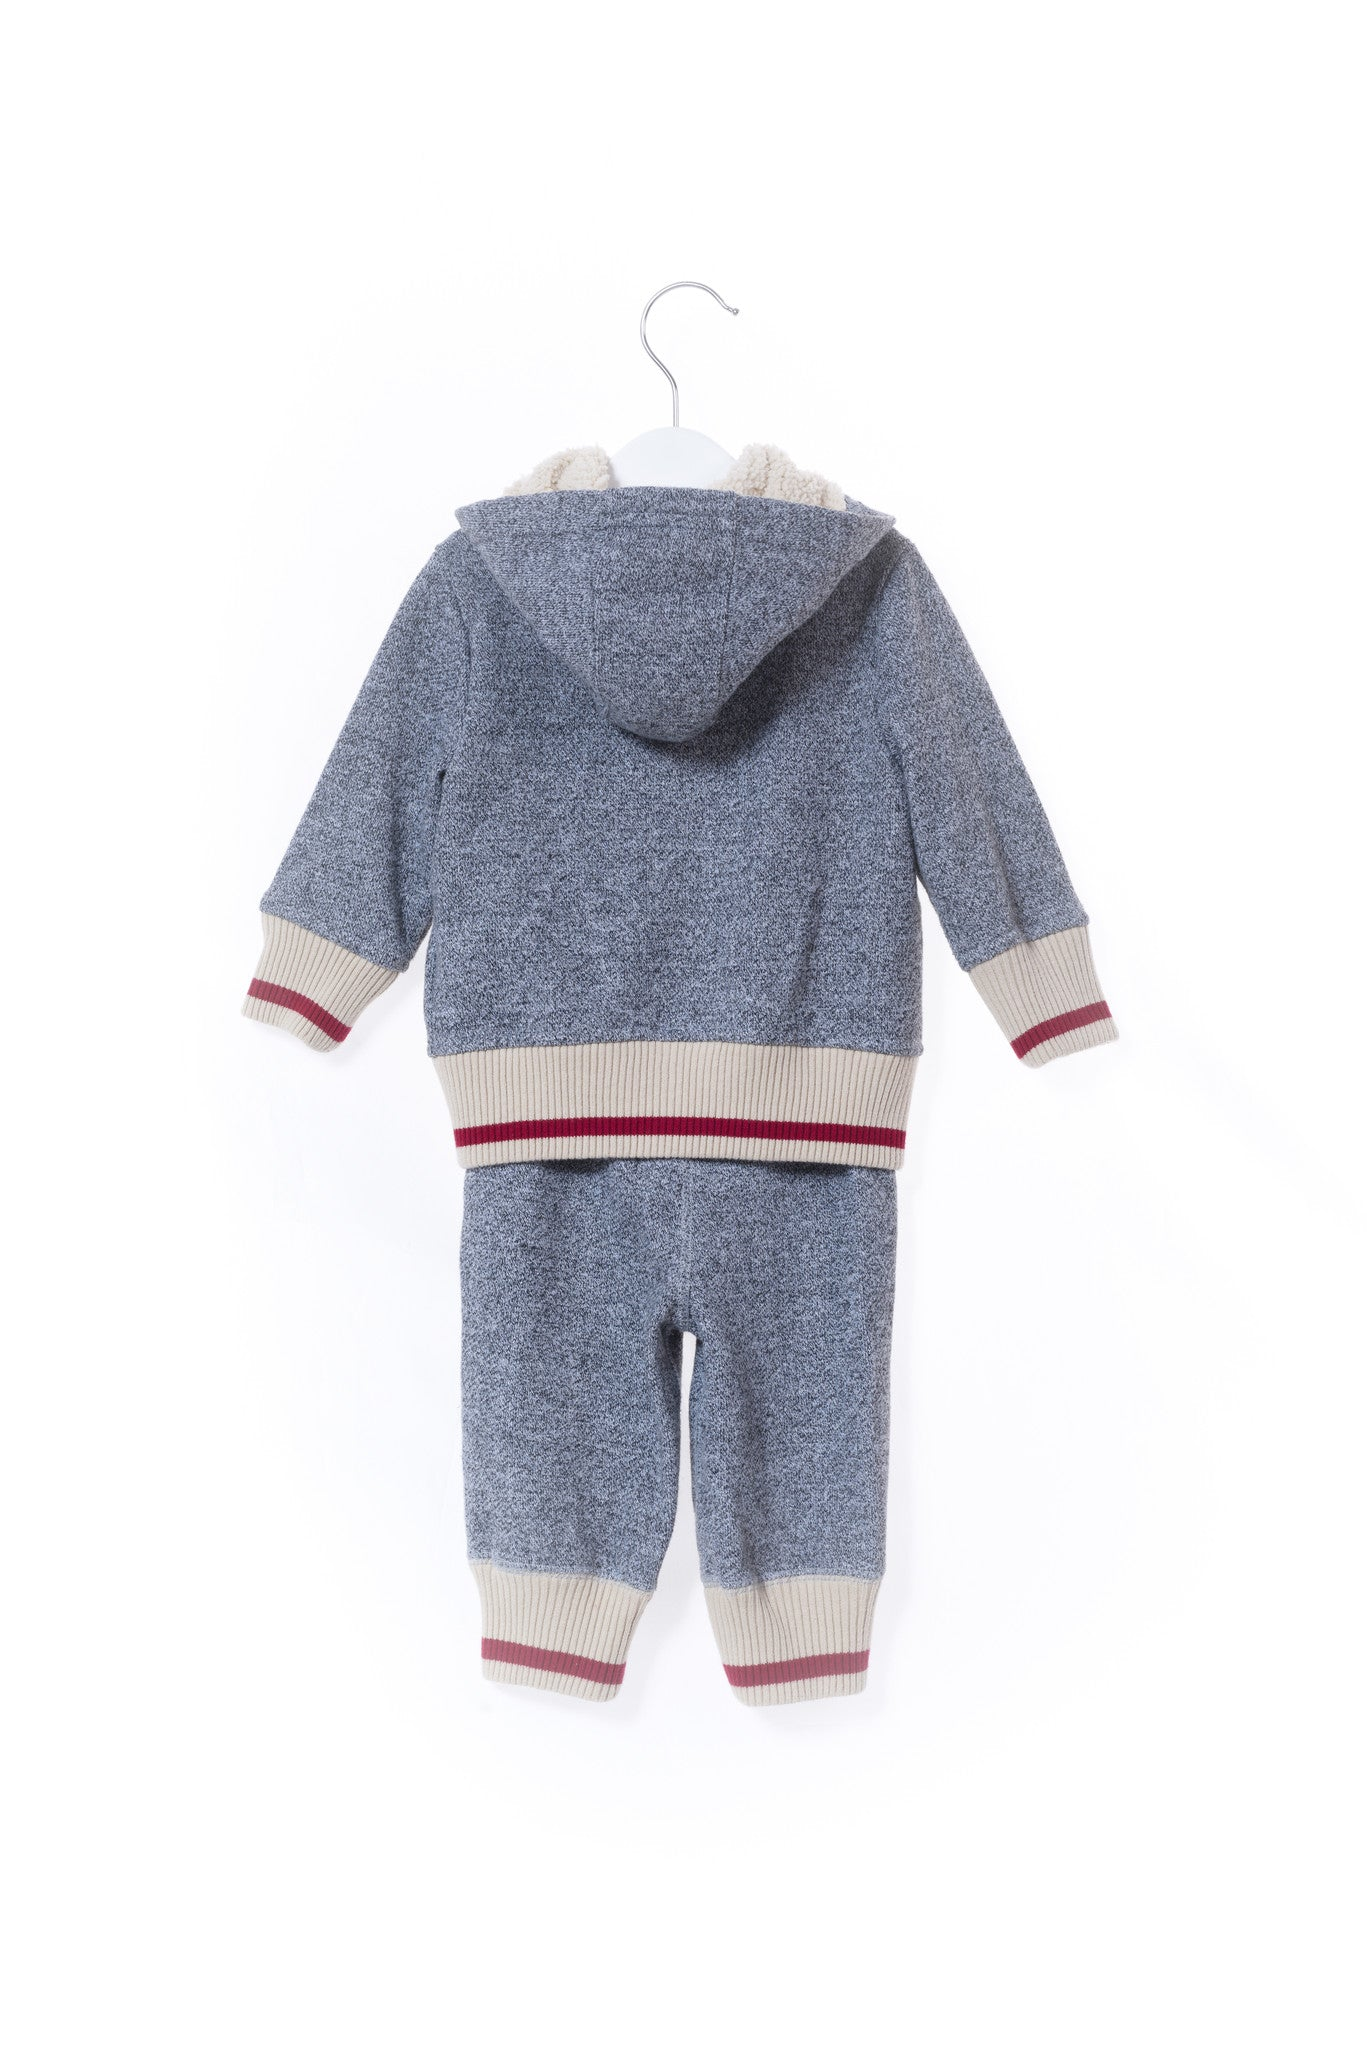 Set 3-6M, Roots at Retykle - Online Baby & Kids Clothing Up to 90% Off